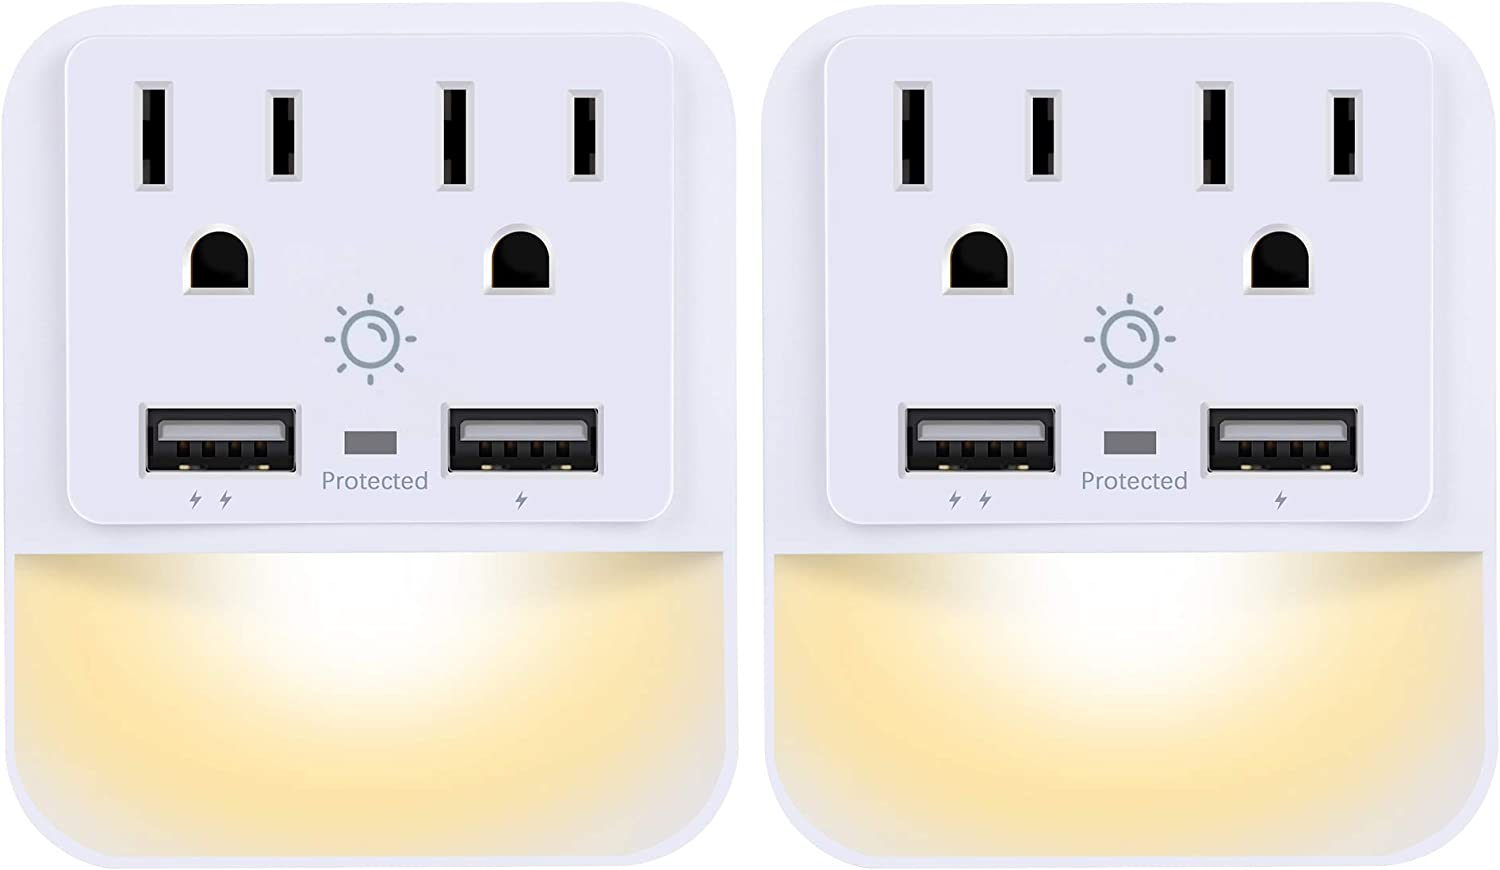 USB Wall Charger, Outlet Adapter, POWRUI 2-Pack Surge Protector(1080 Joules) with Dual USB Charger Ports(2.4A Total), Dual Outlet Extender and Dusk-to-Dawn Sensor Night Light, White, ETL Certified